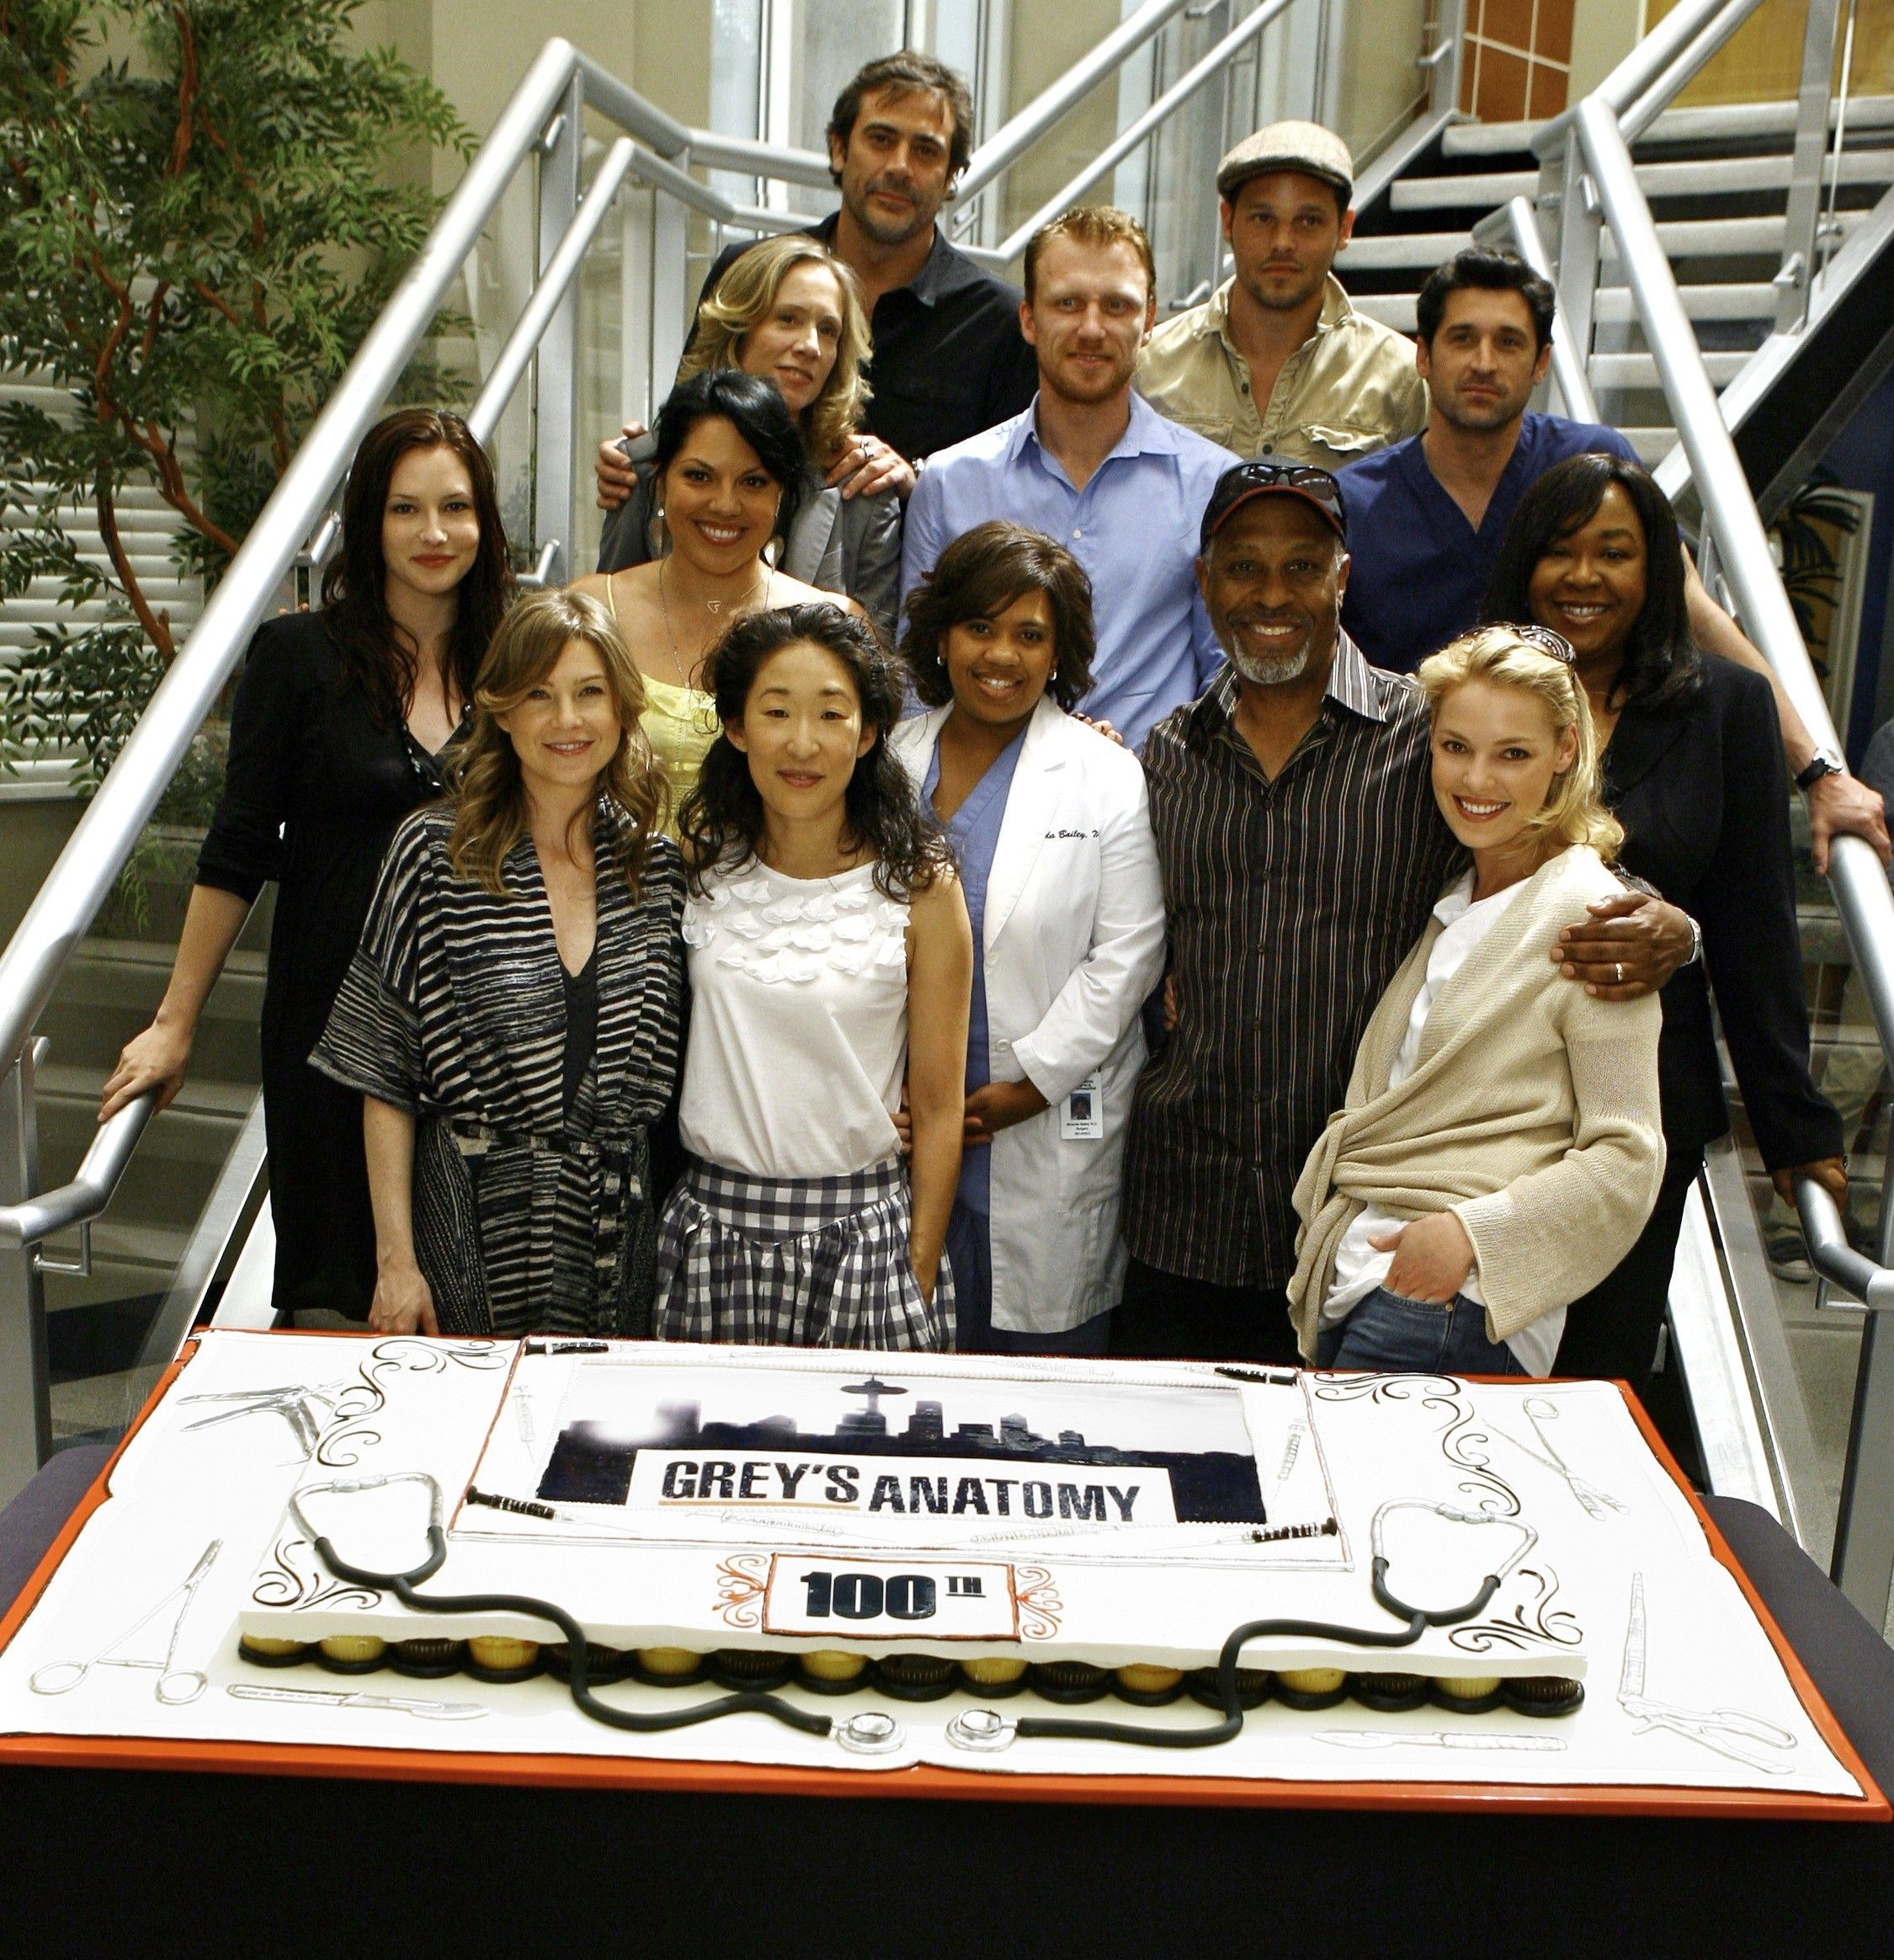 Greys Anatomy 100th Episode Celebration My Tv Addiction